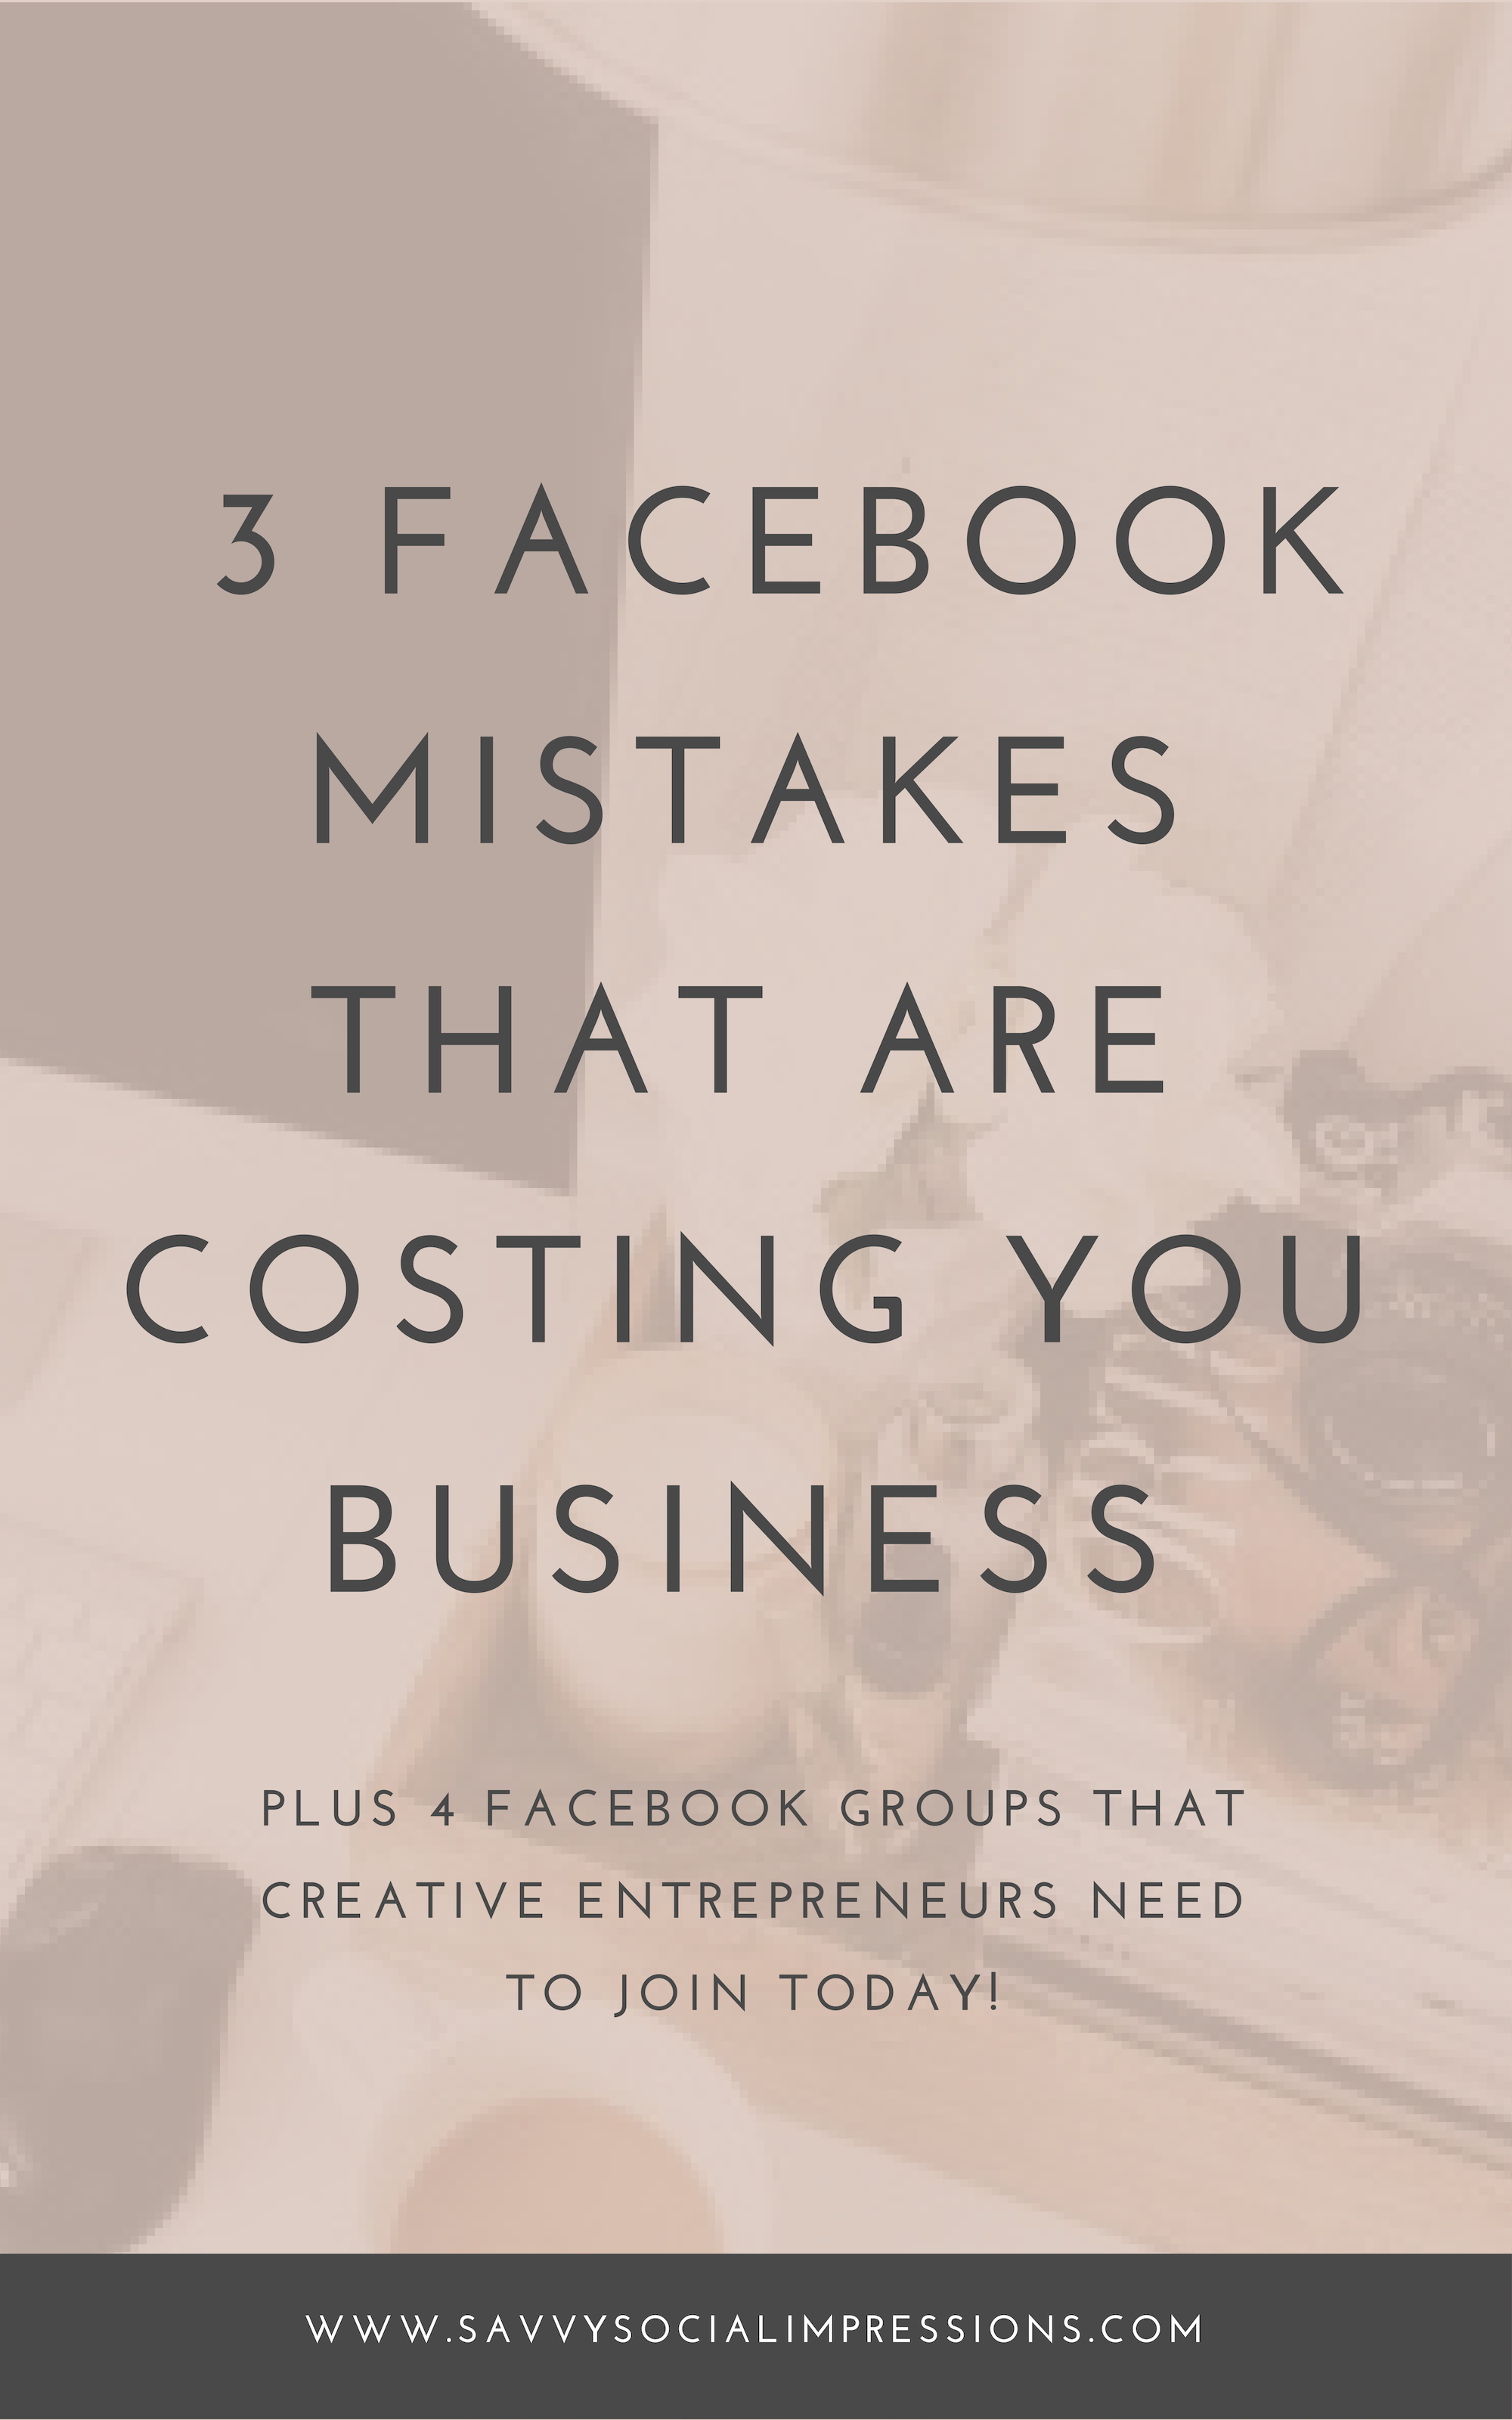 4 Facebook groups that creative entrepreneurs need to join today!.png